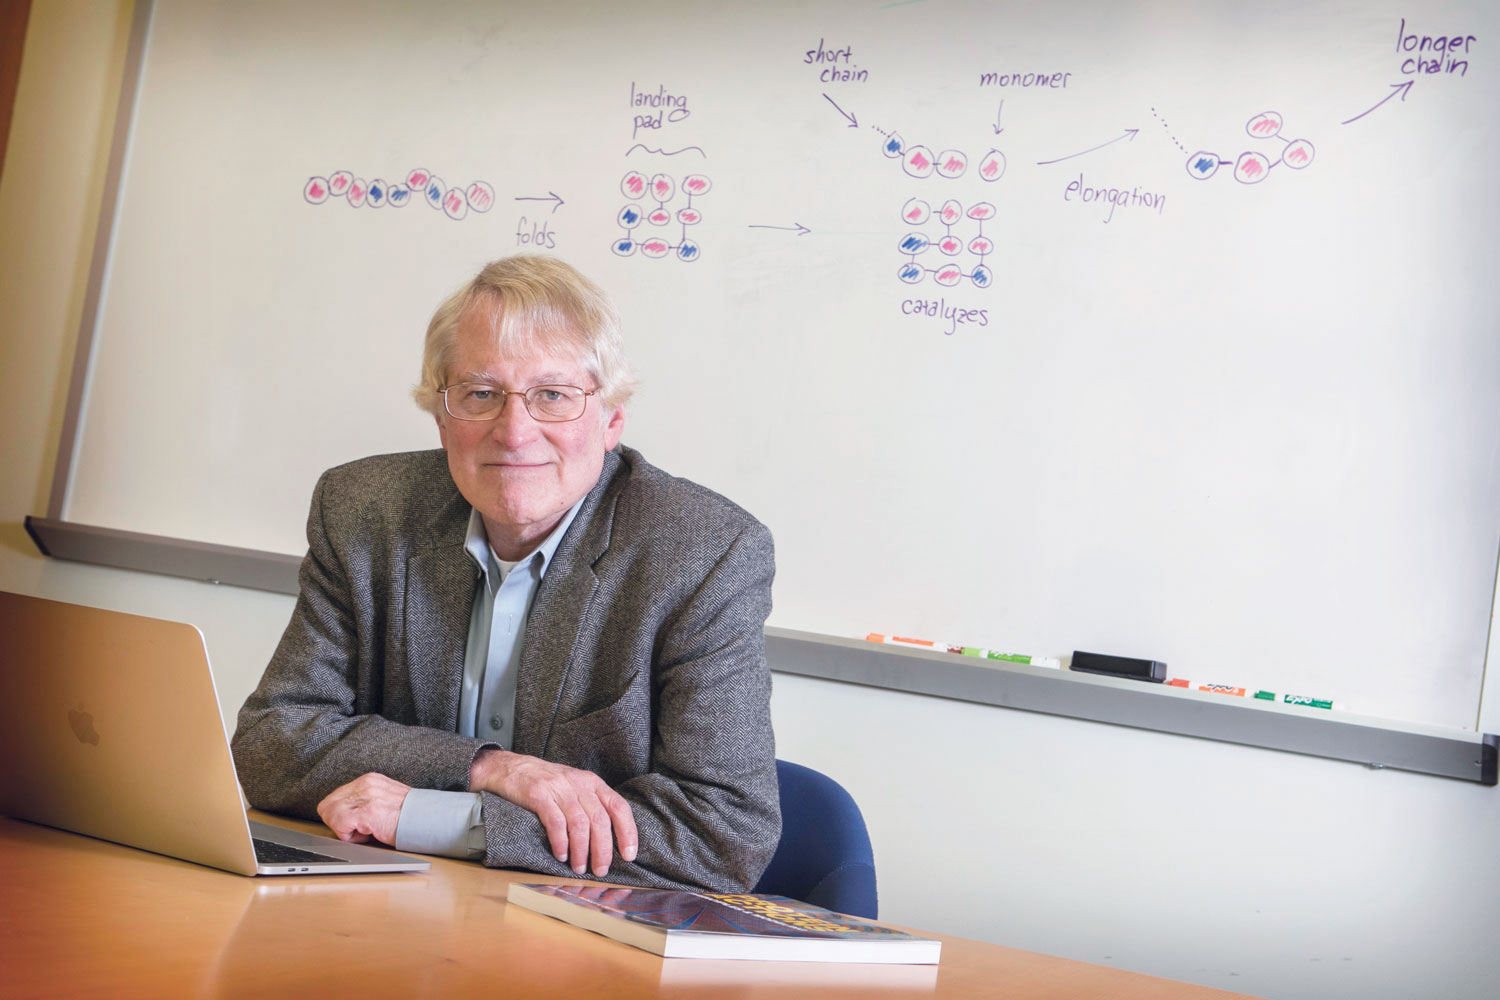 Ken Dill, a biophysicist at Stony Brook University, has been studying protein folding for decades. He's now using that work to examine the chemistry-to-biology transition that took place four billion years ago.